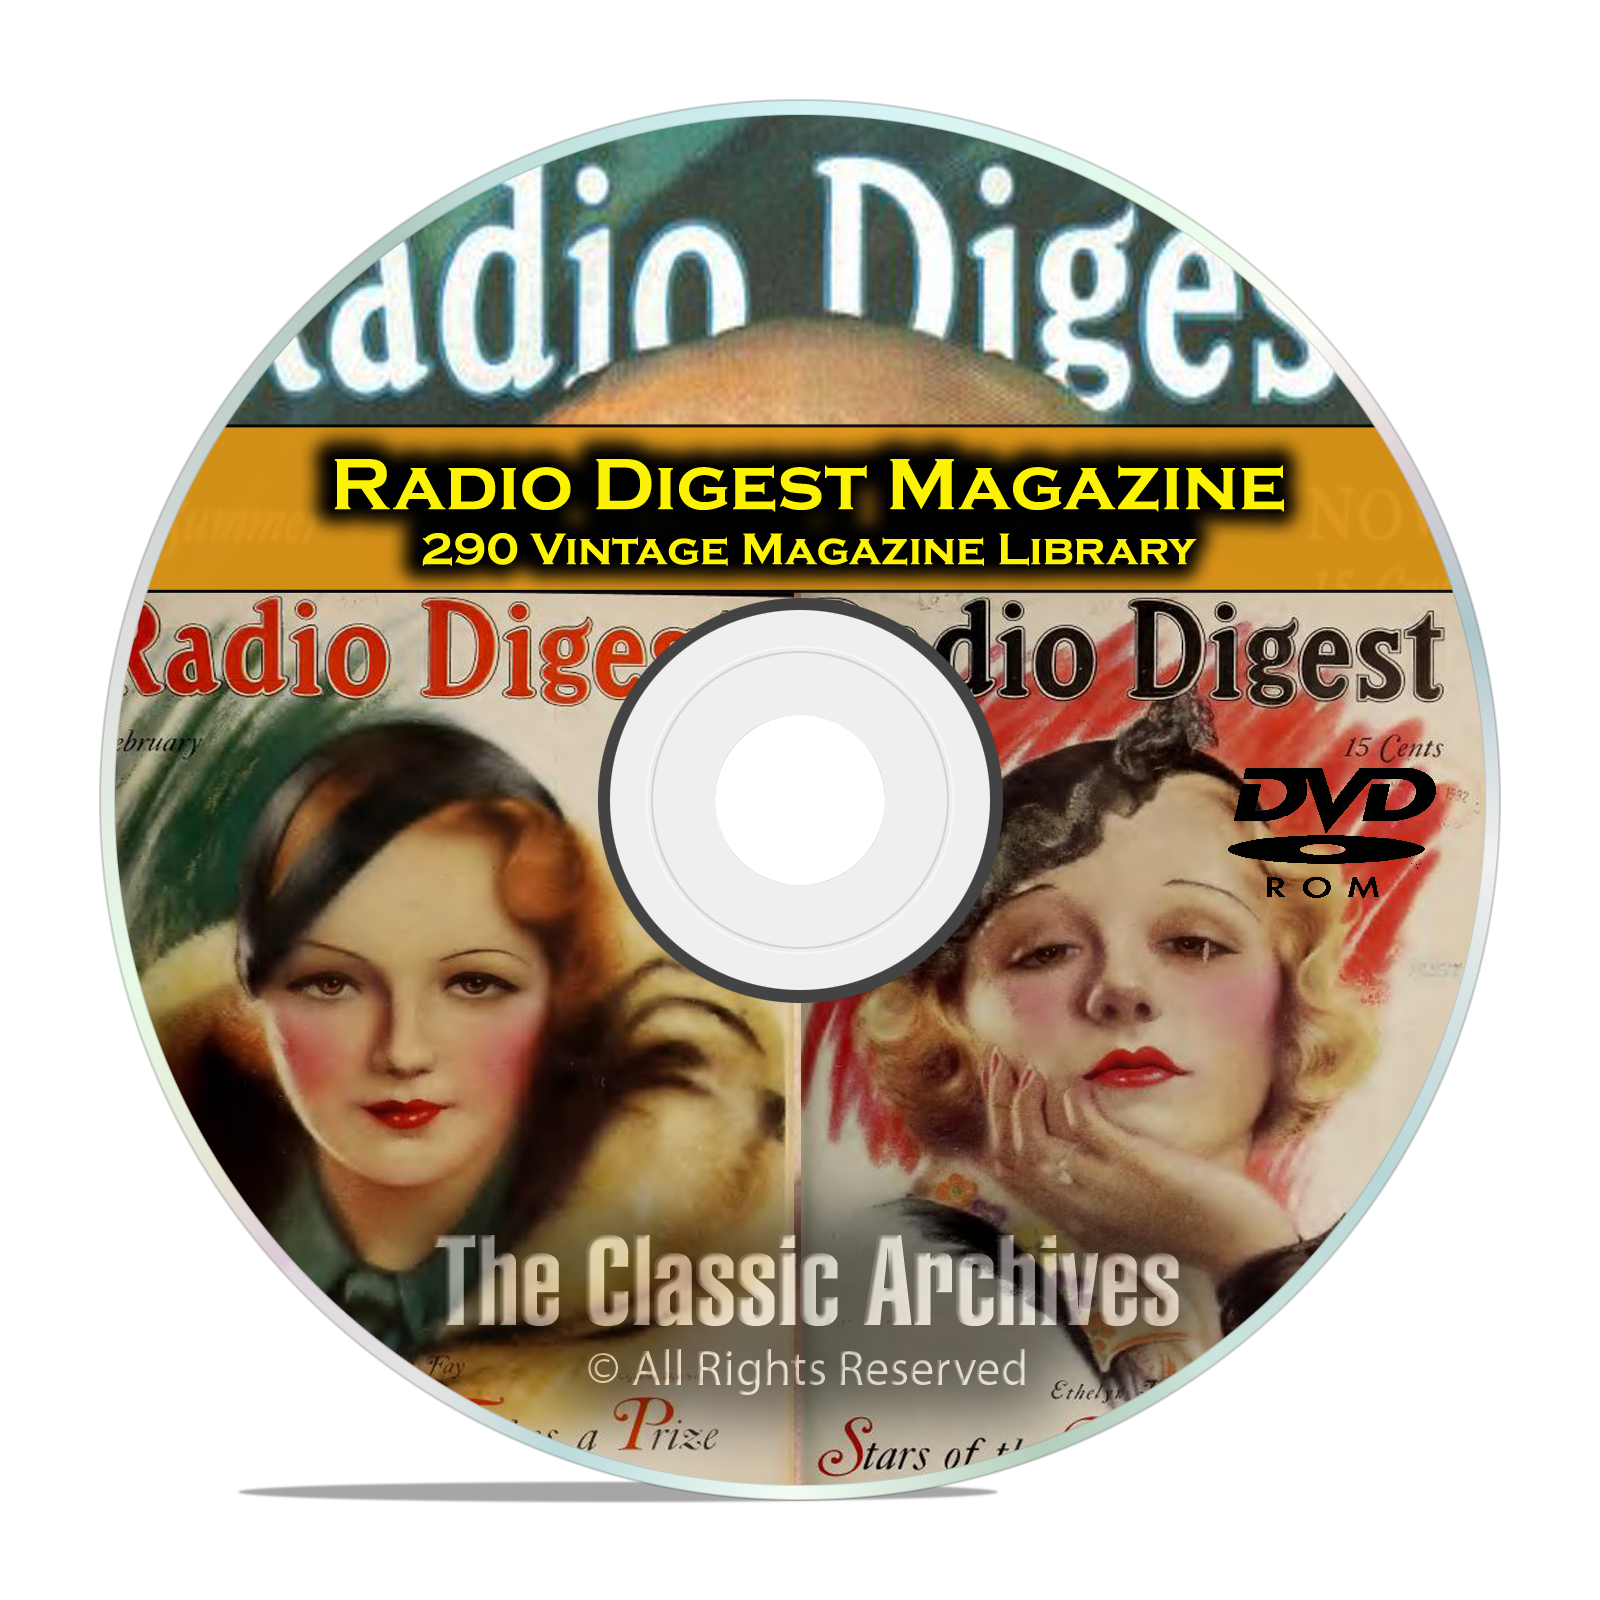 Radio Digest Magazine, 290 Vintage Old Time Radio Magazine Collection DVD